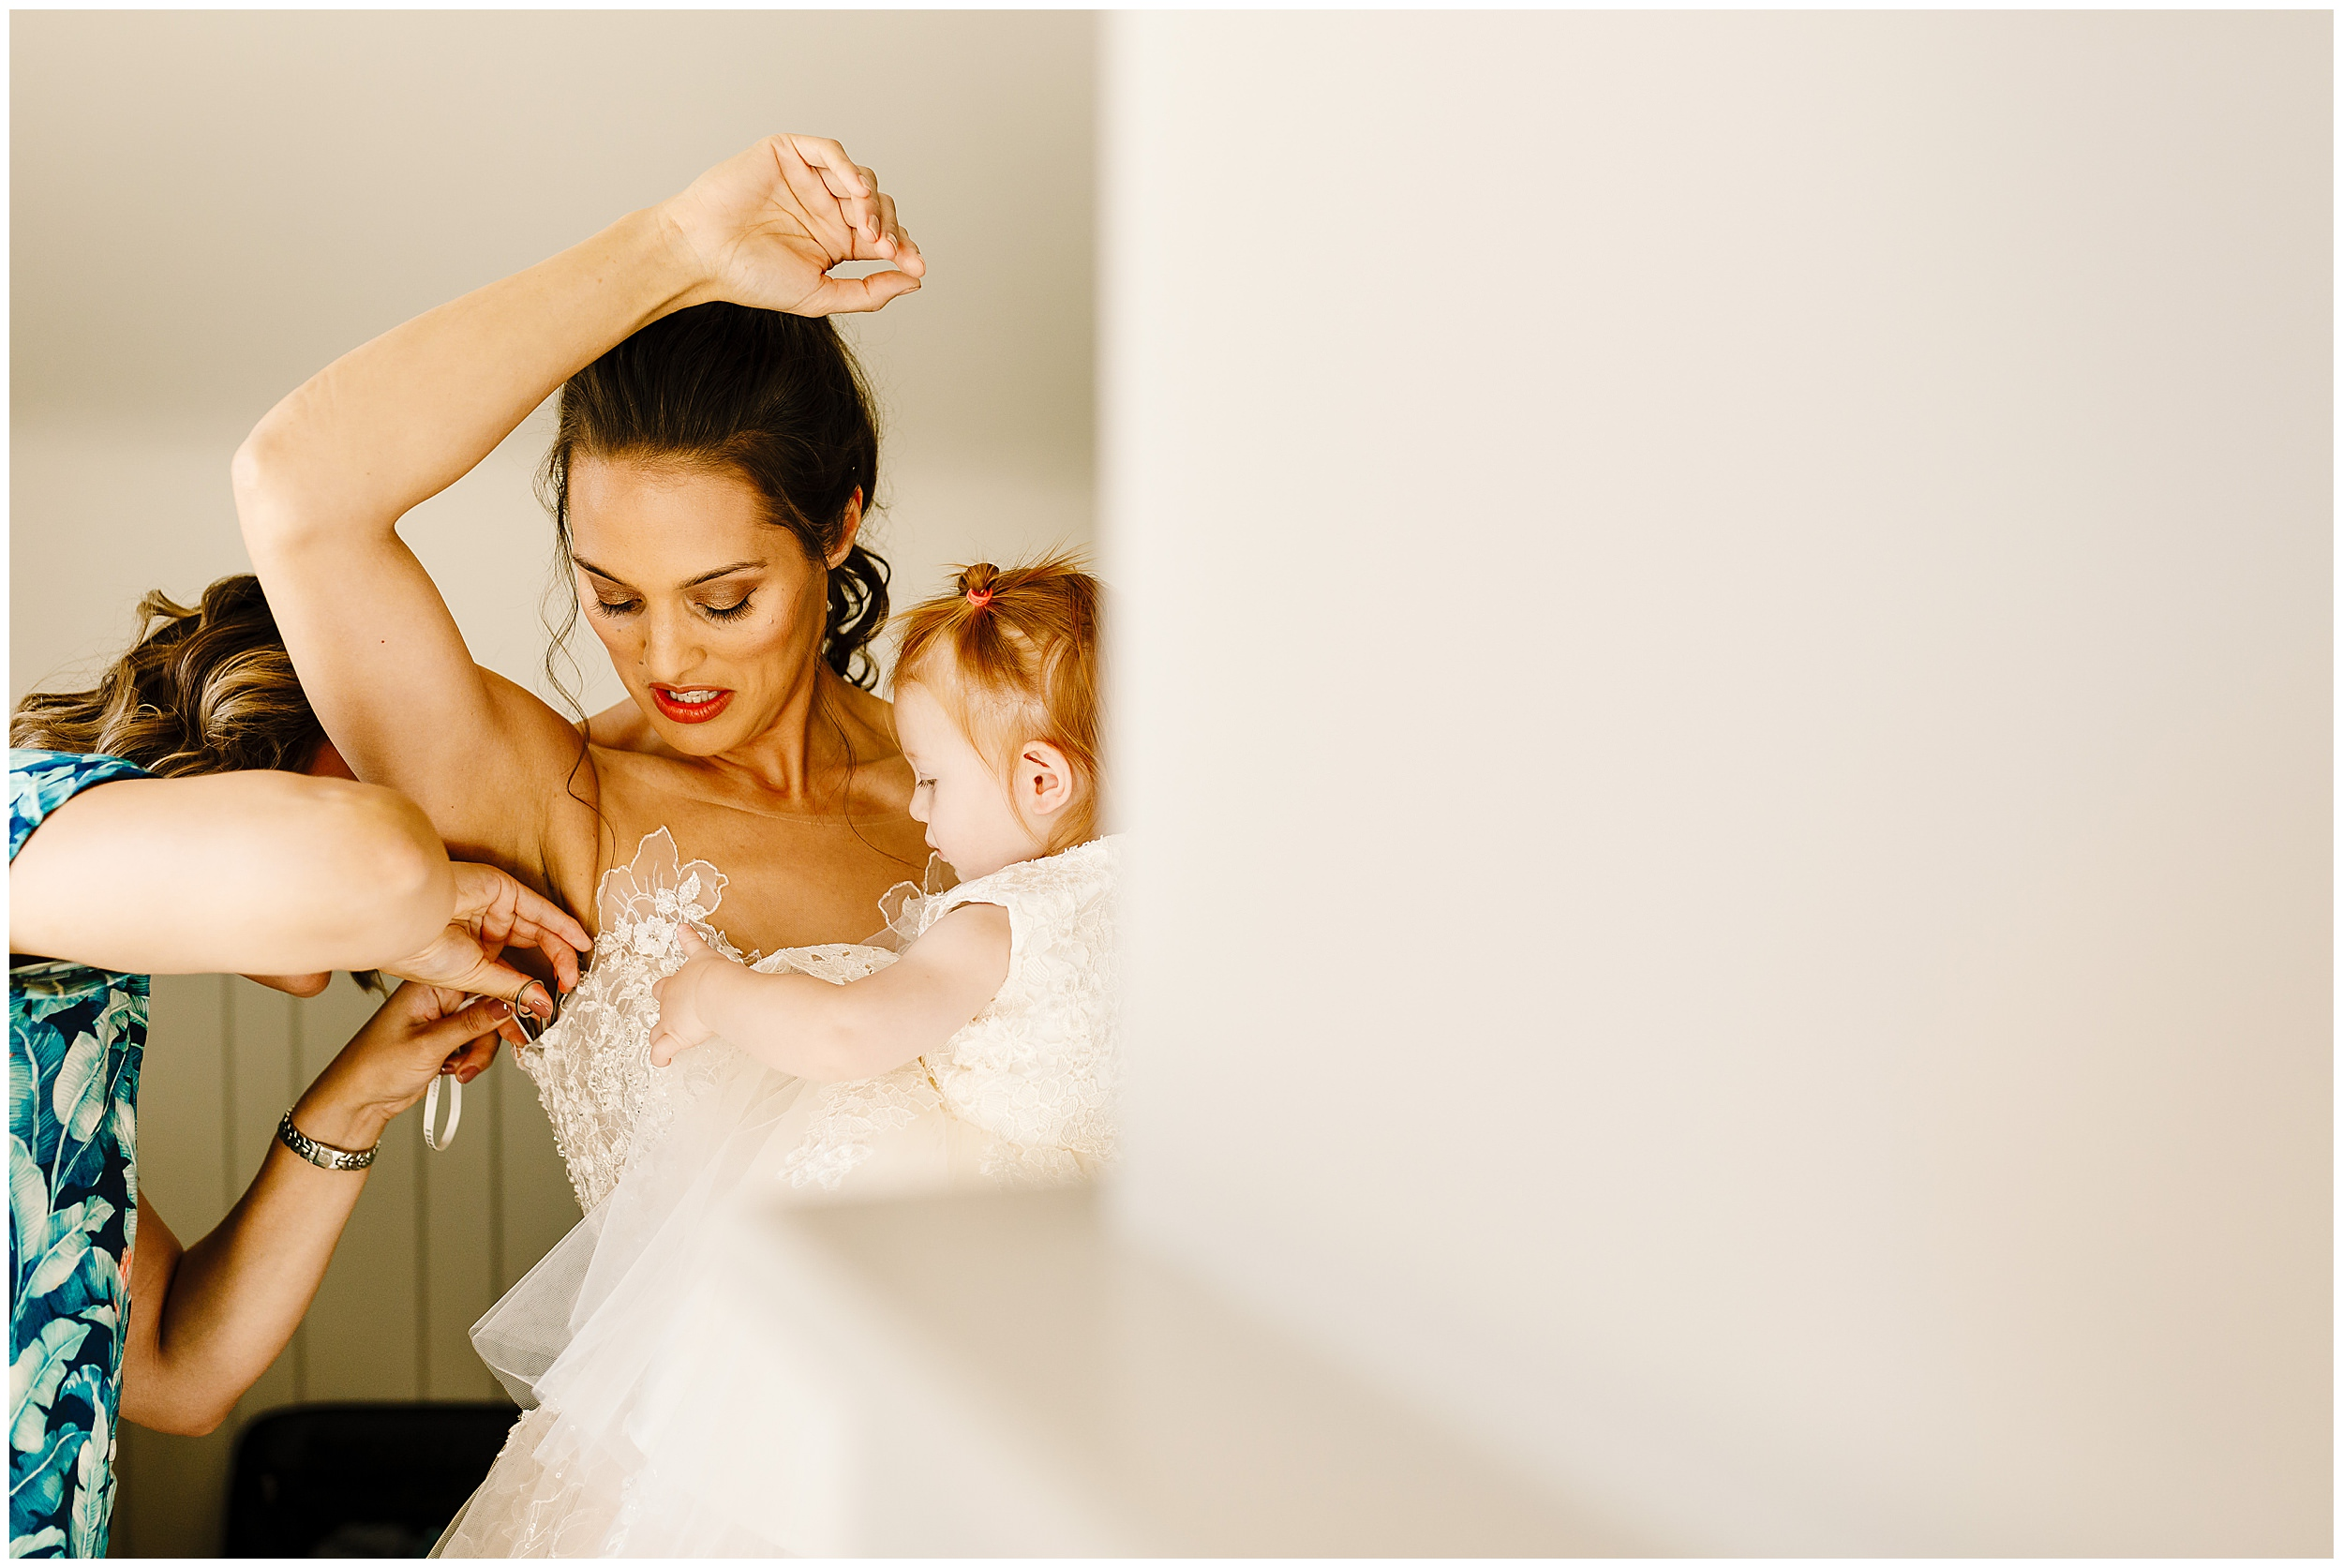 A bride's sister helping her to put on her wedding dress